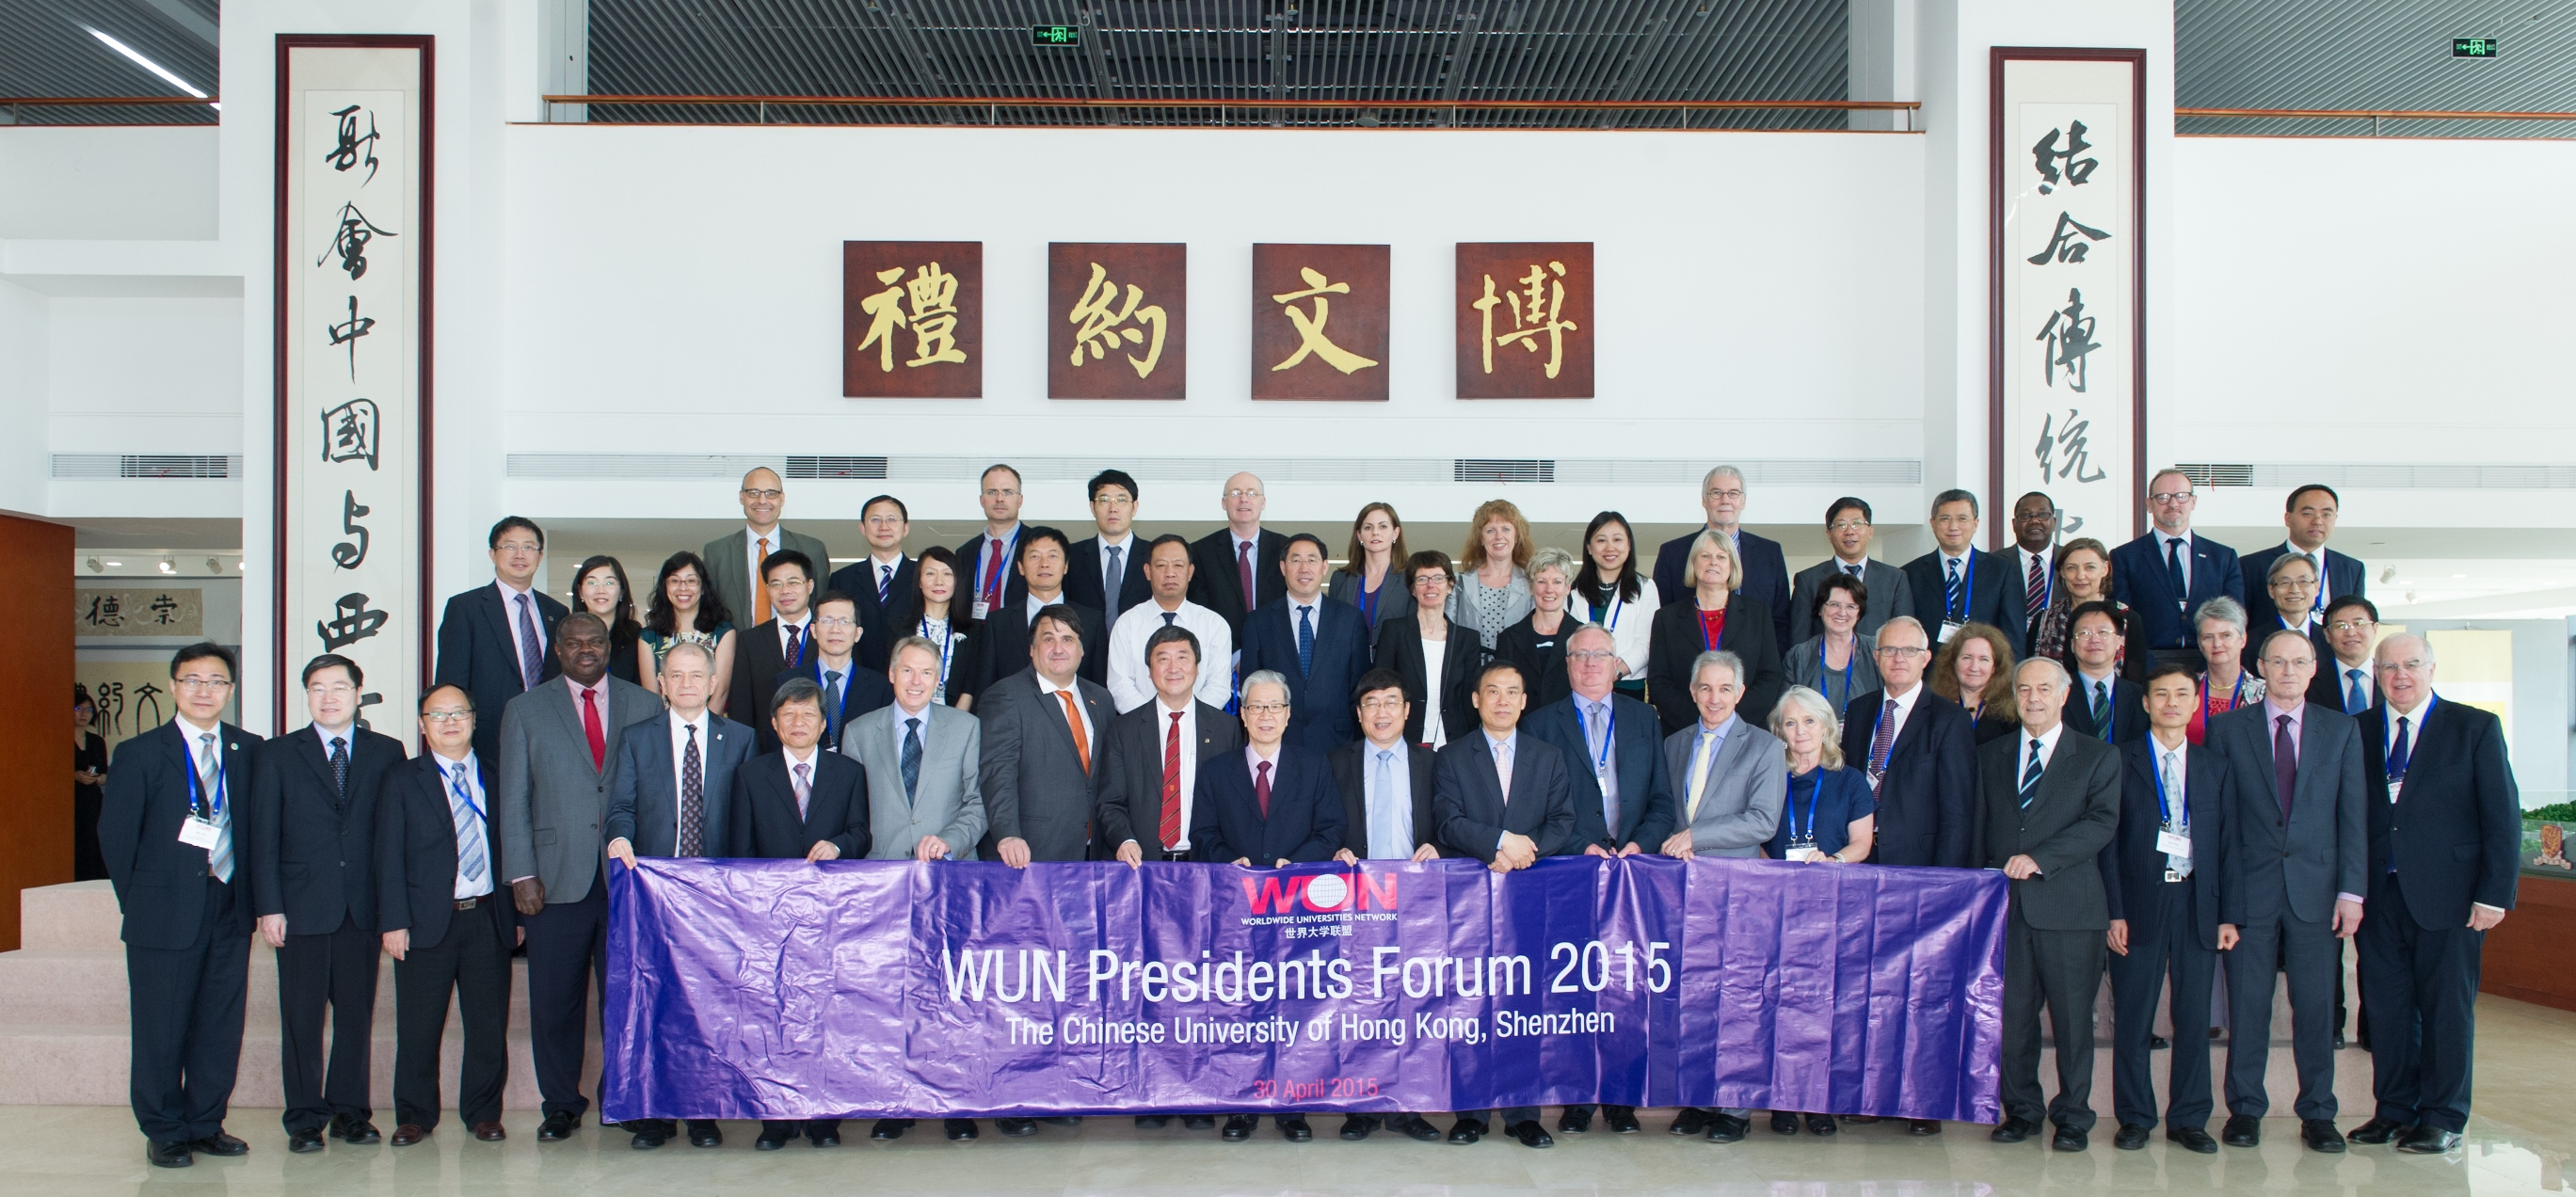 Leadership of WUN member universities and Chinese universities gather for the WUN Presidents Forum held at the Chinese University of Hong Kong, Shenzhen to discuss the reform for higher education in China and the world